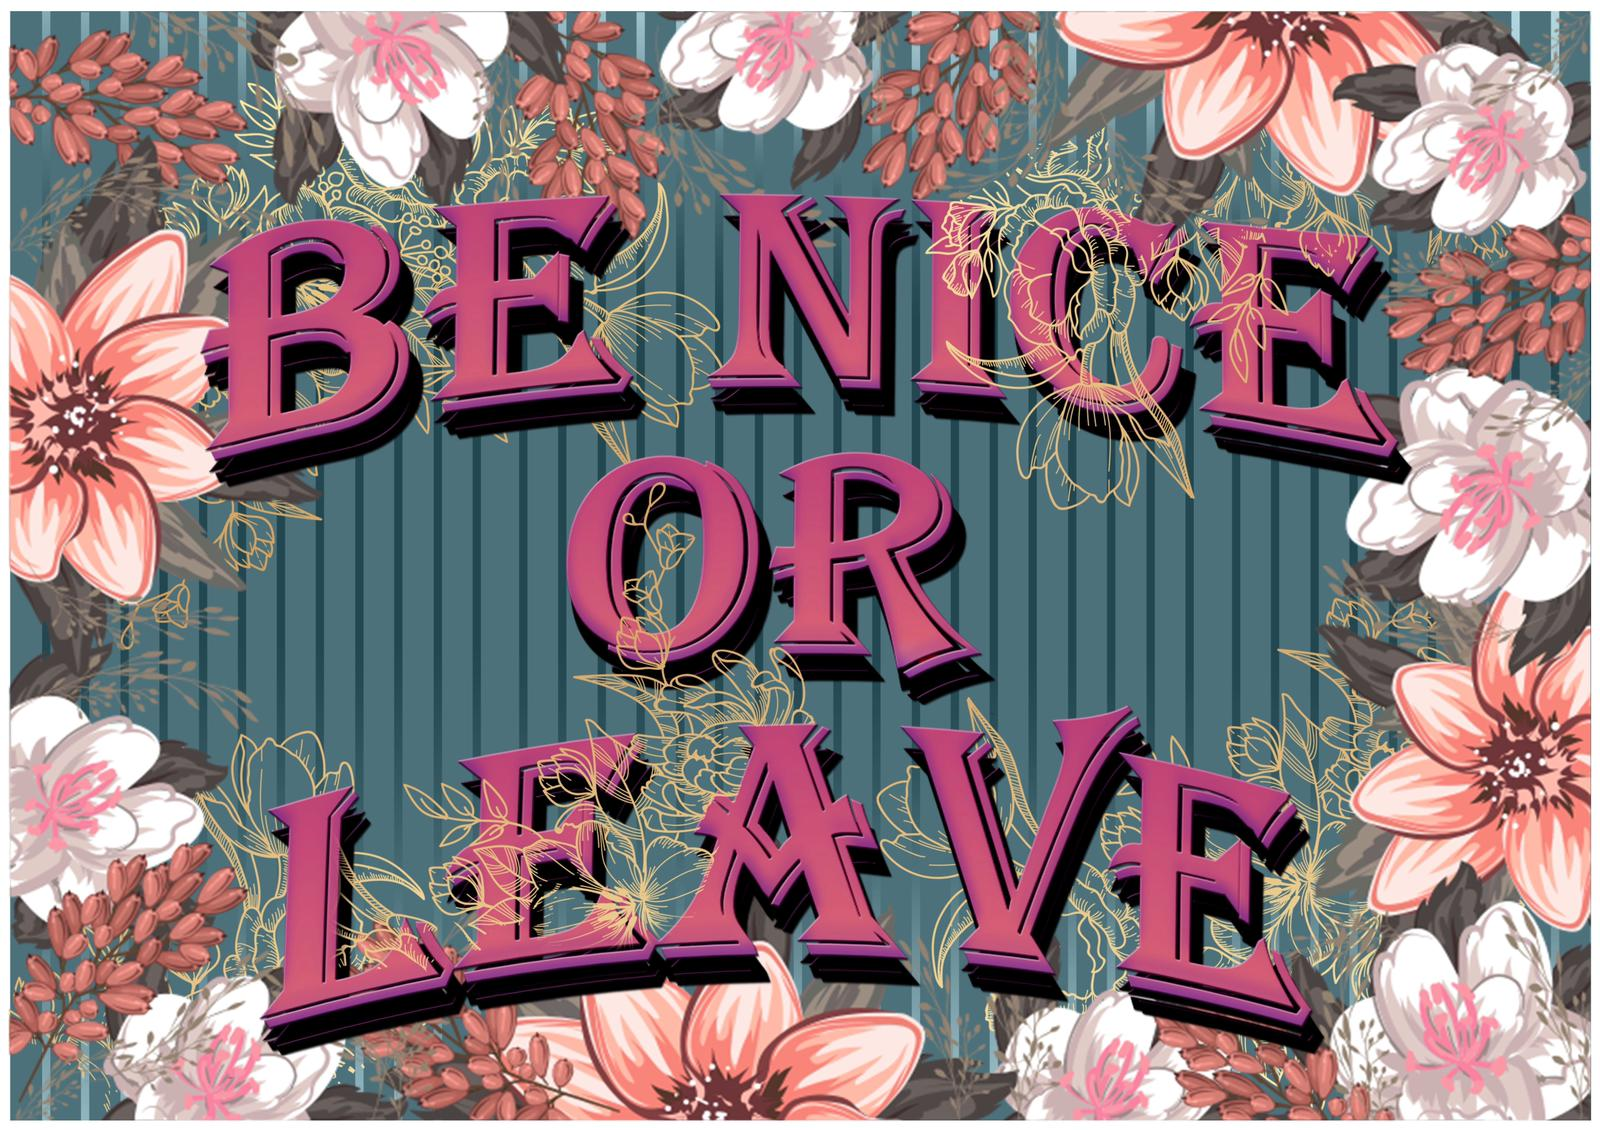 'Be nice or leave!' Print